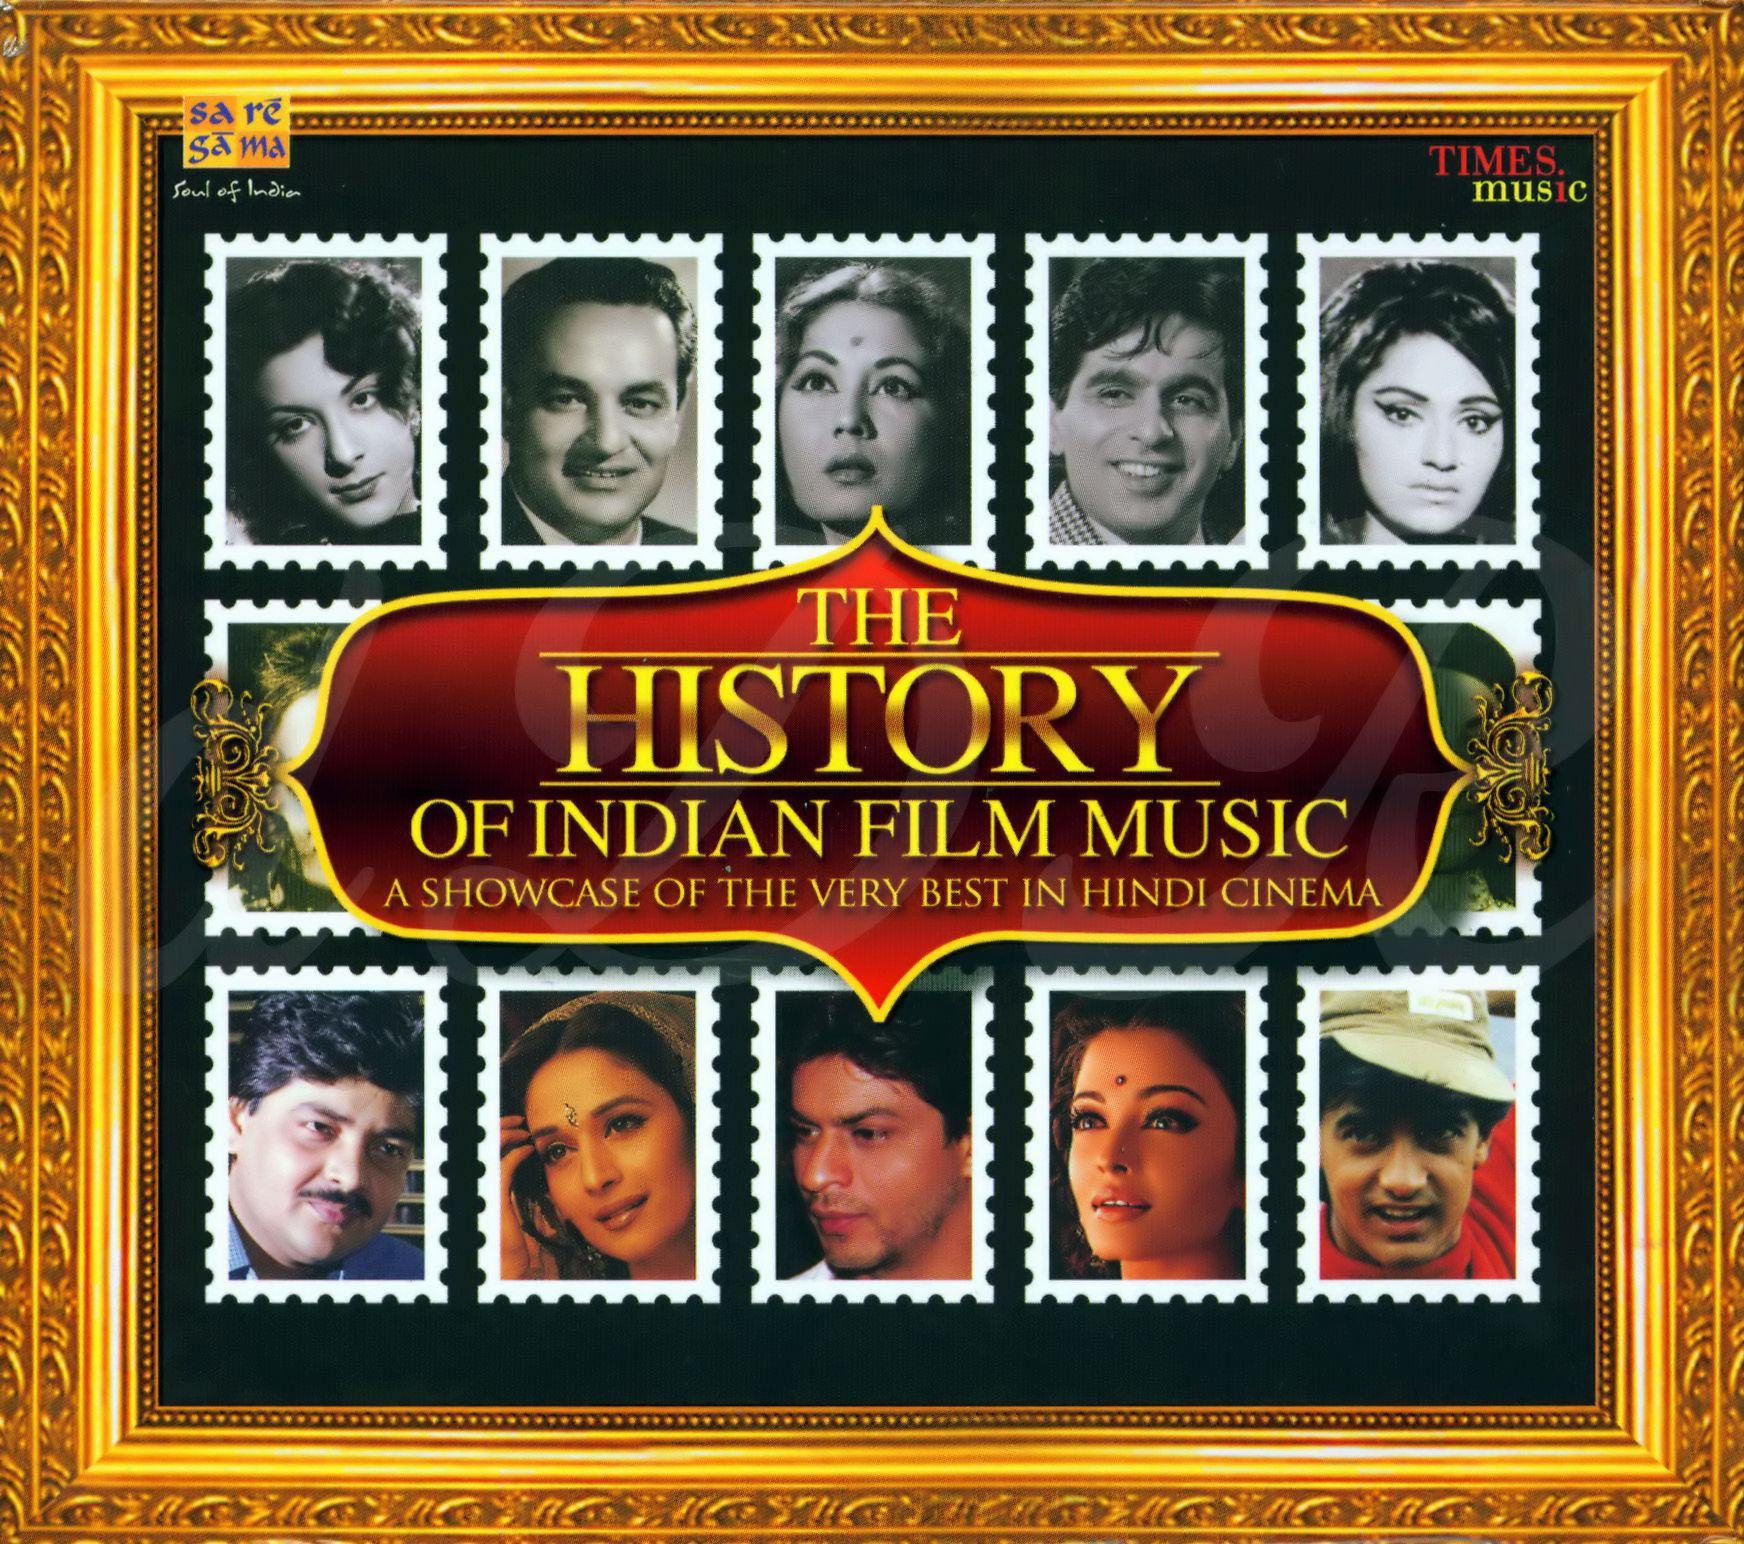 history of the indian music The history of hindi filmi music: text by vish krishnan, posted on recmusicindianmisc by rebala gopinath (grebal1@umbcedu) the talkie era until 1935.